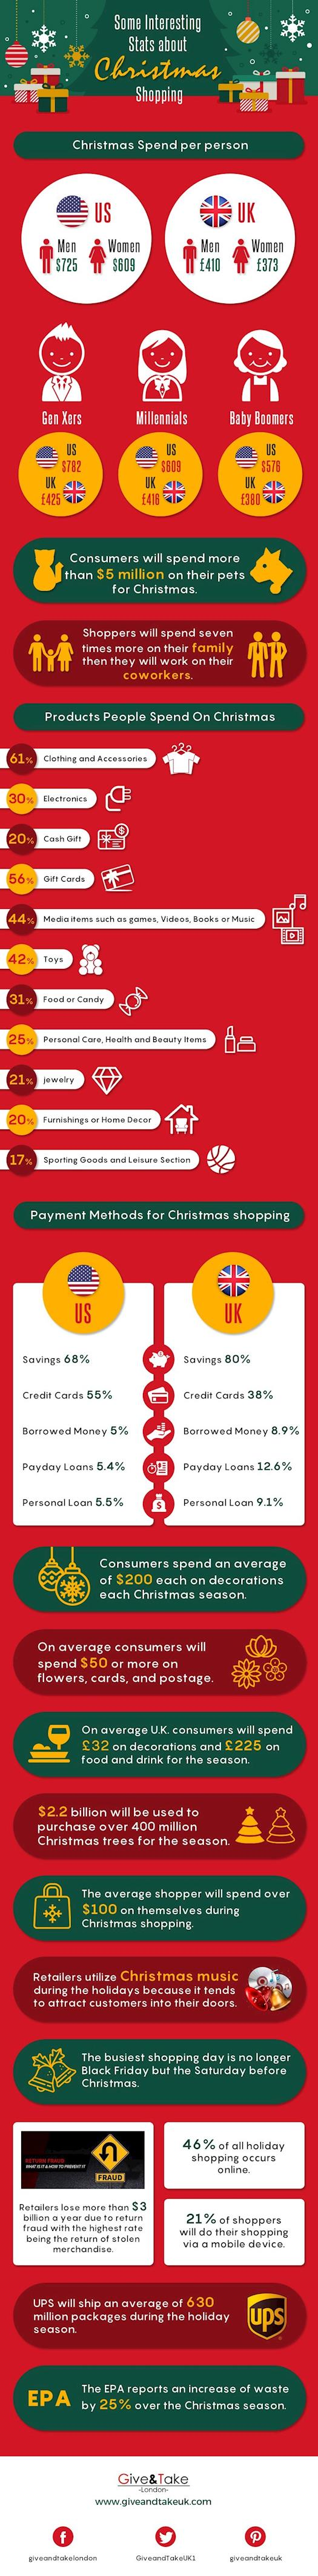 Some Interesting stats about Christmas shopping